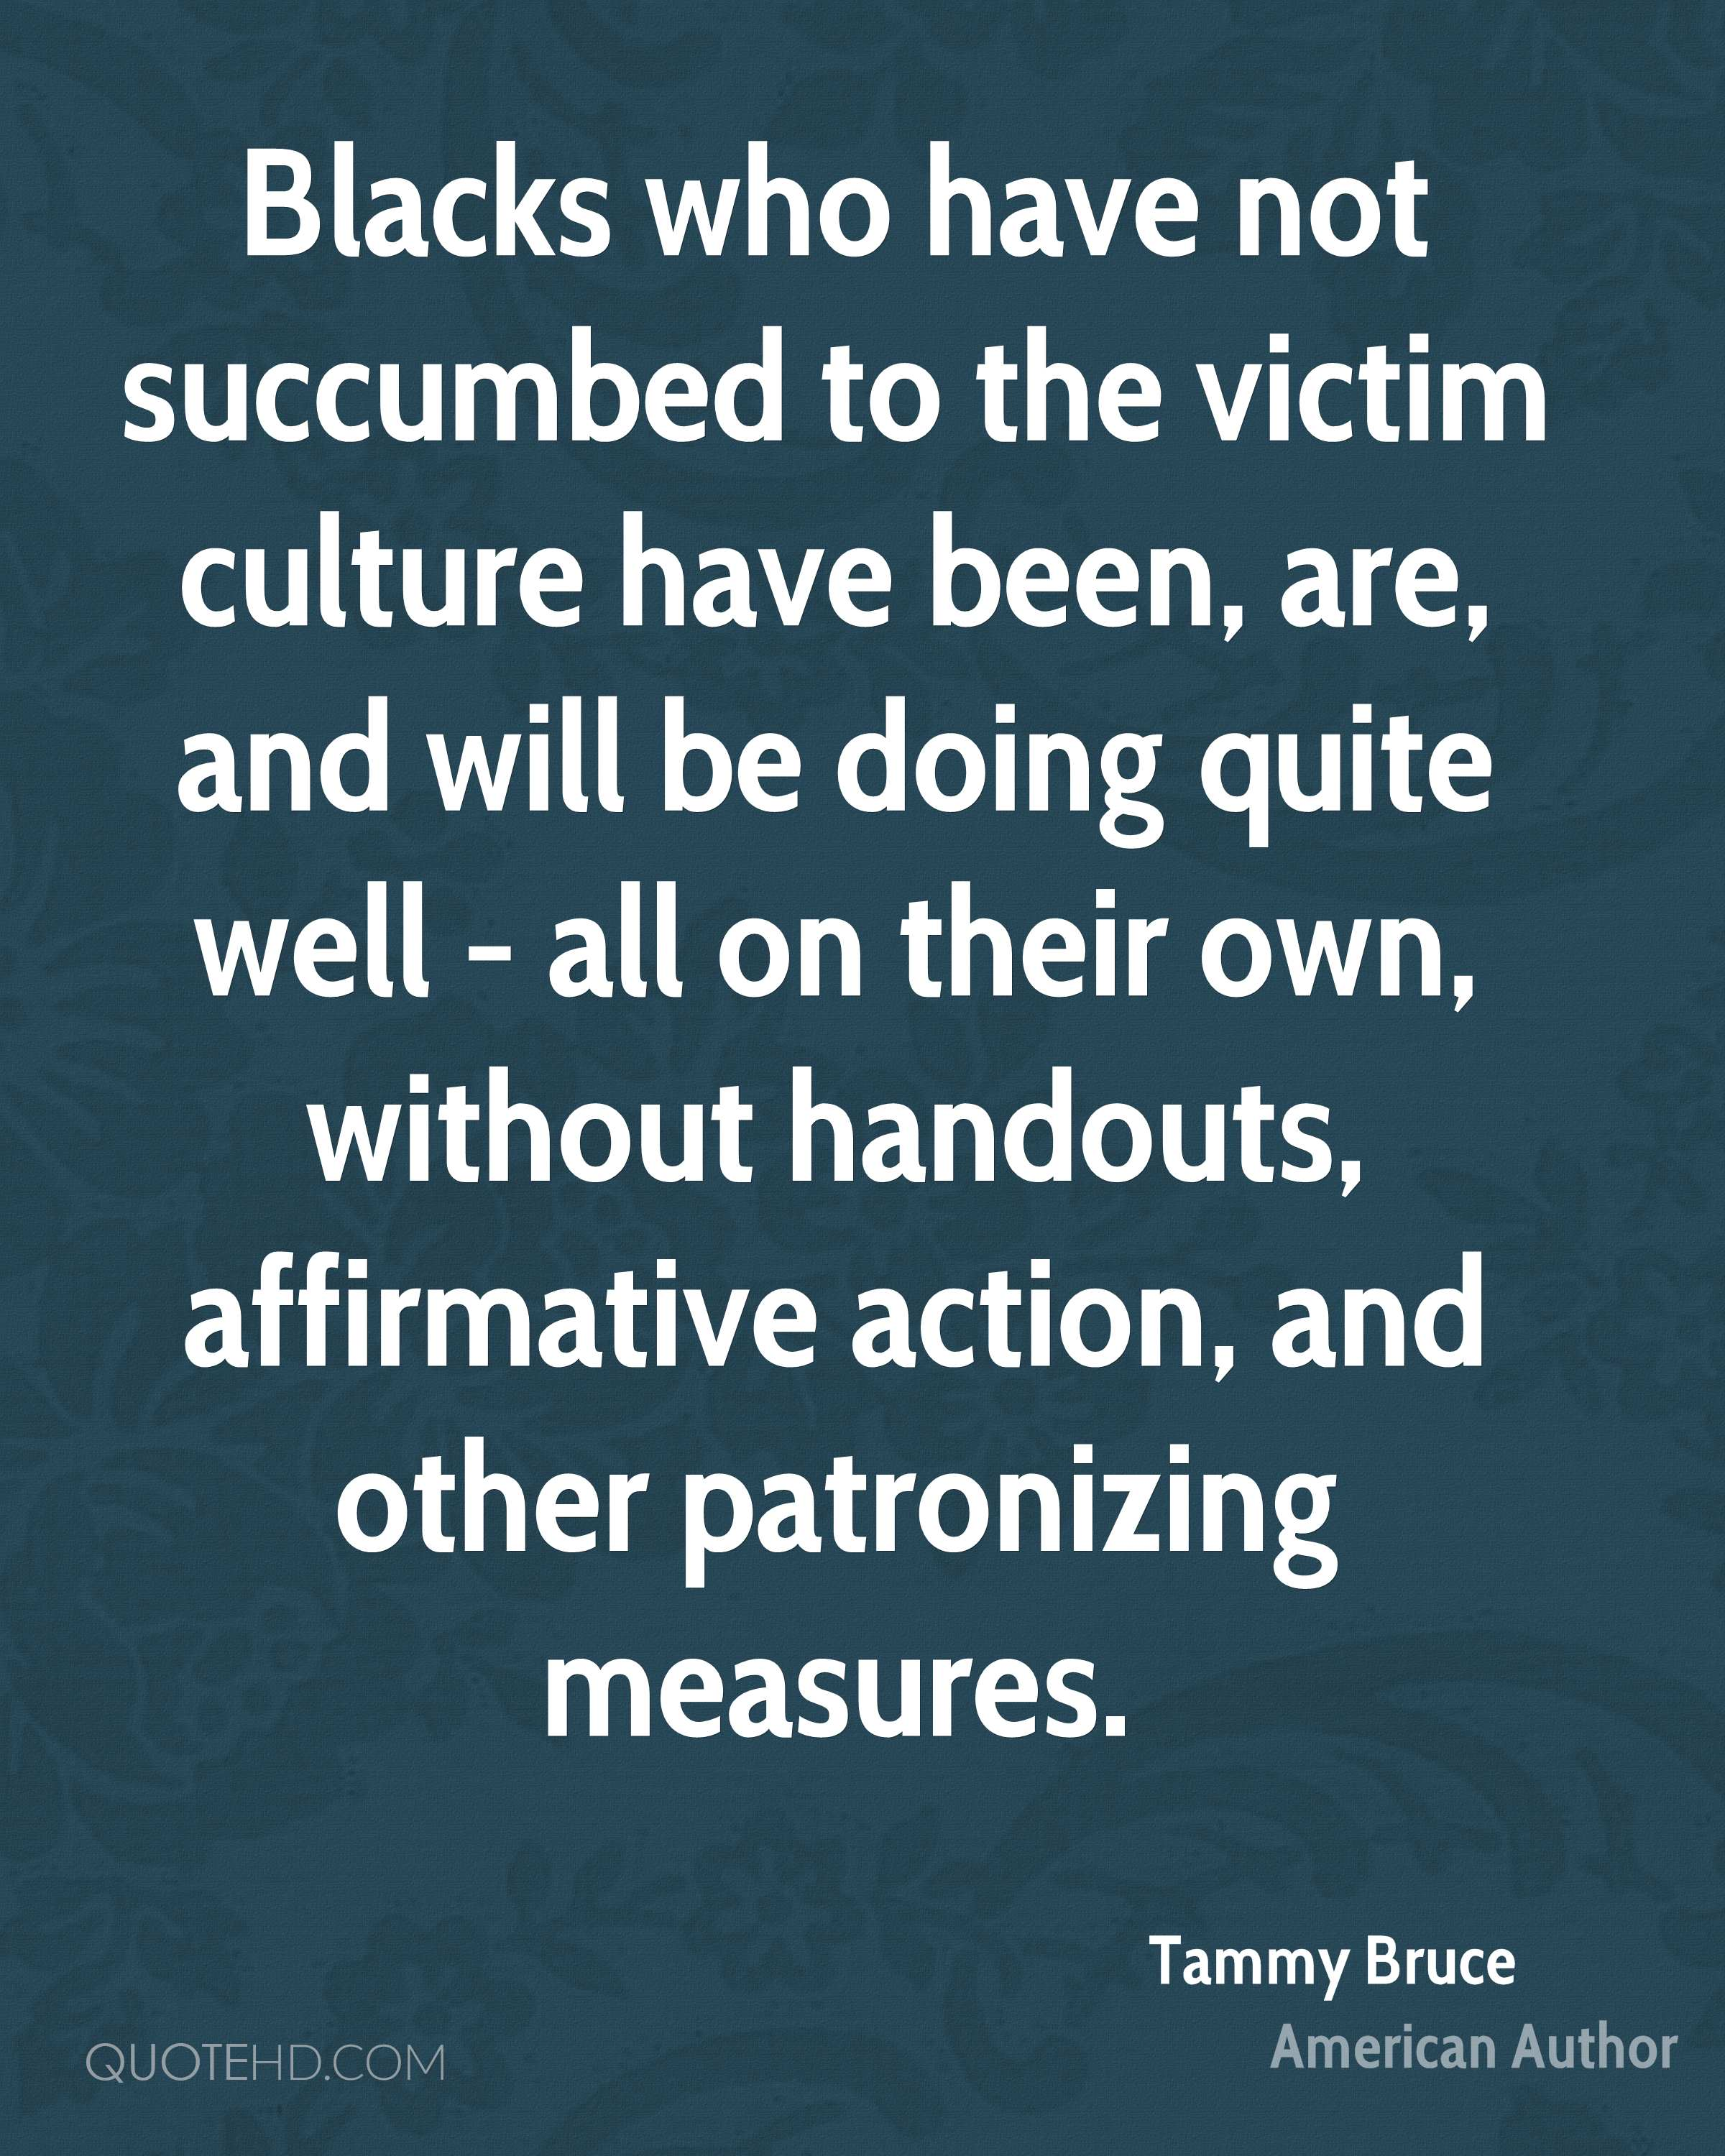 Blacks who have not succumbed to the victim culture have been, are, and will be doing quite well - all on their own, without handouts, affirmative action, and other patronizing measures.